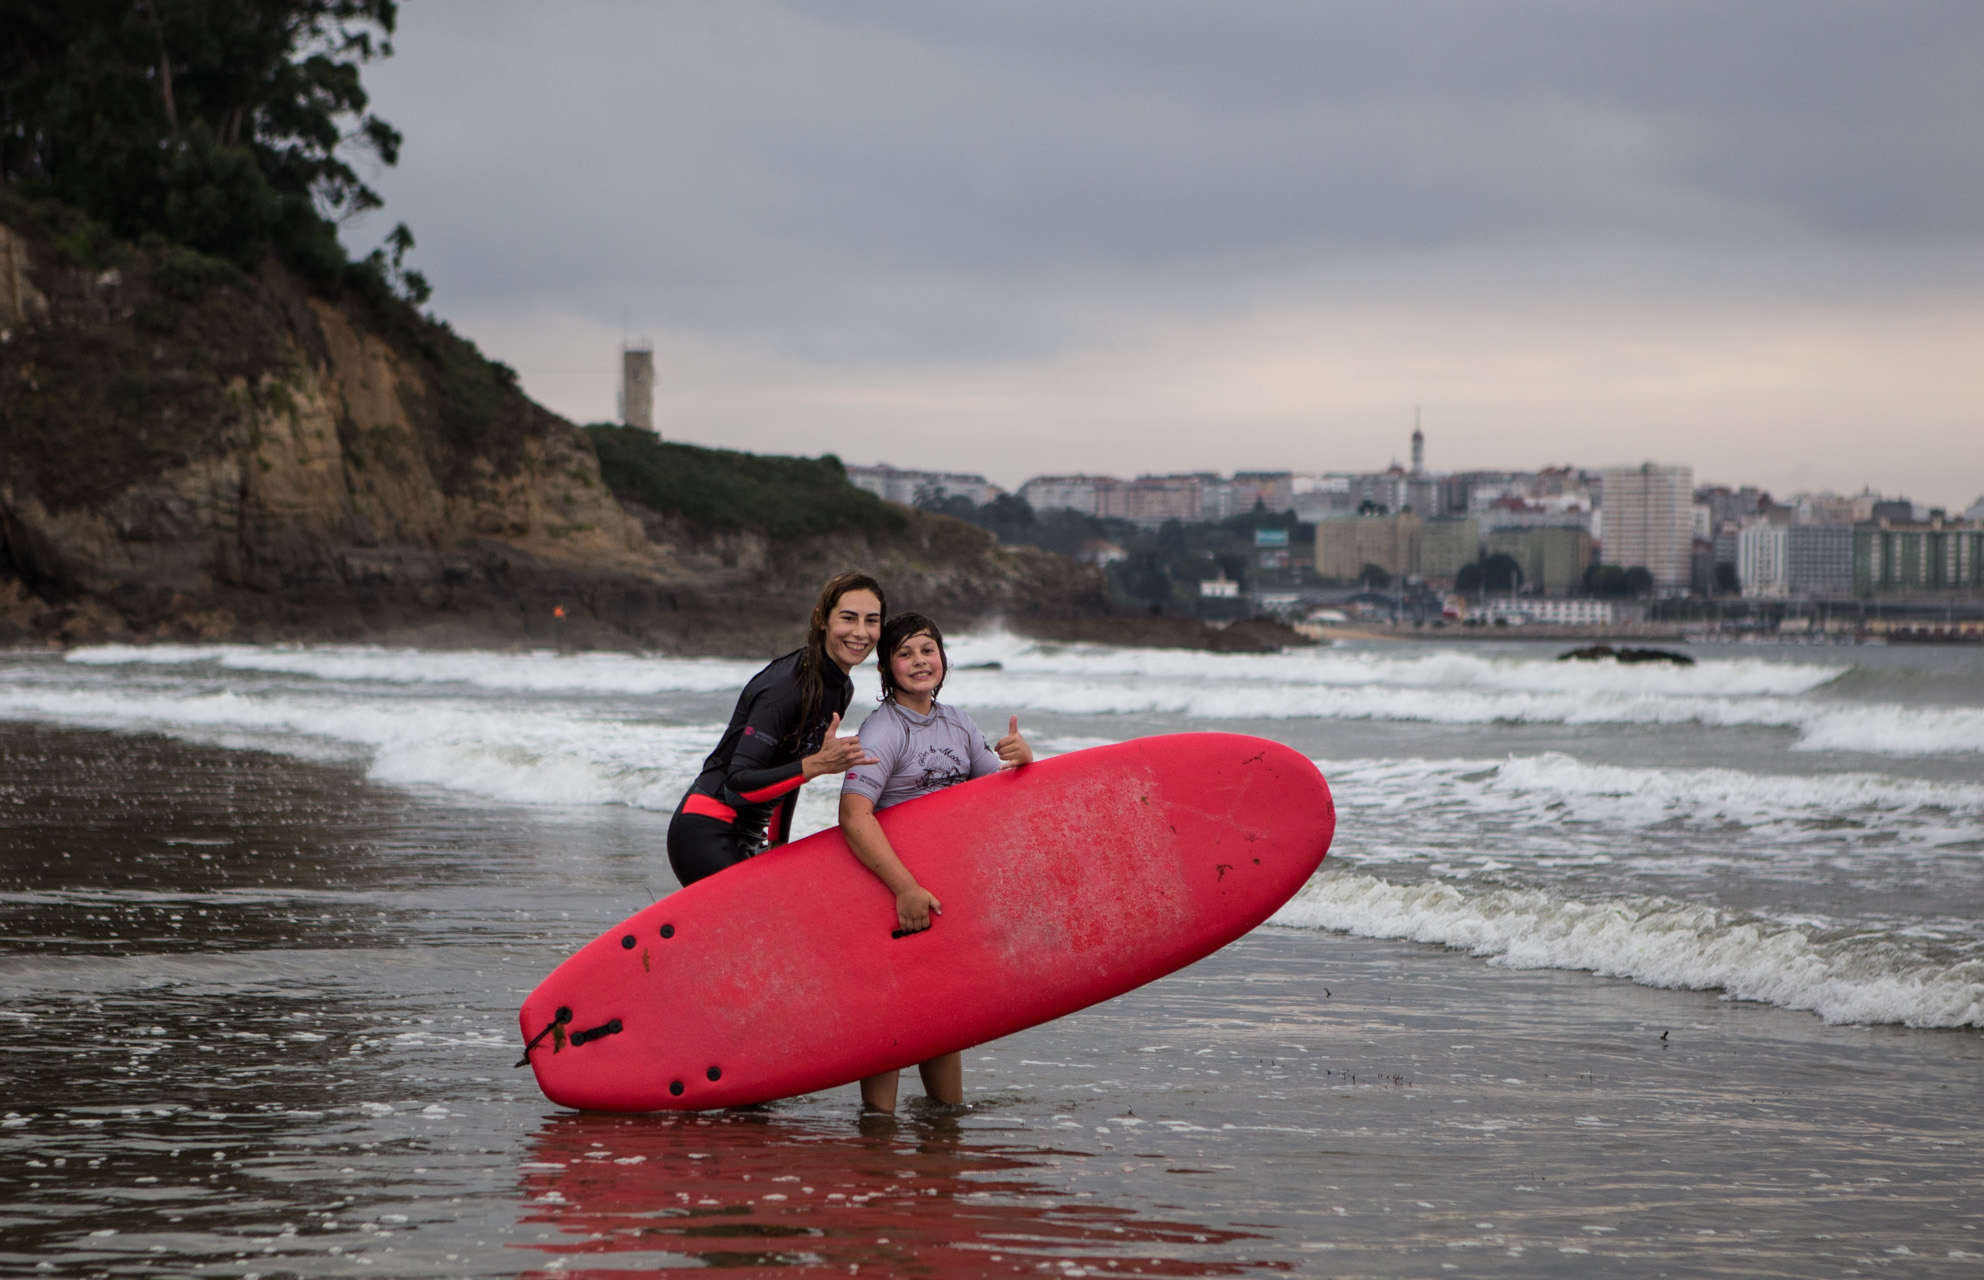 Evento surf son do mar -31.jpg